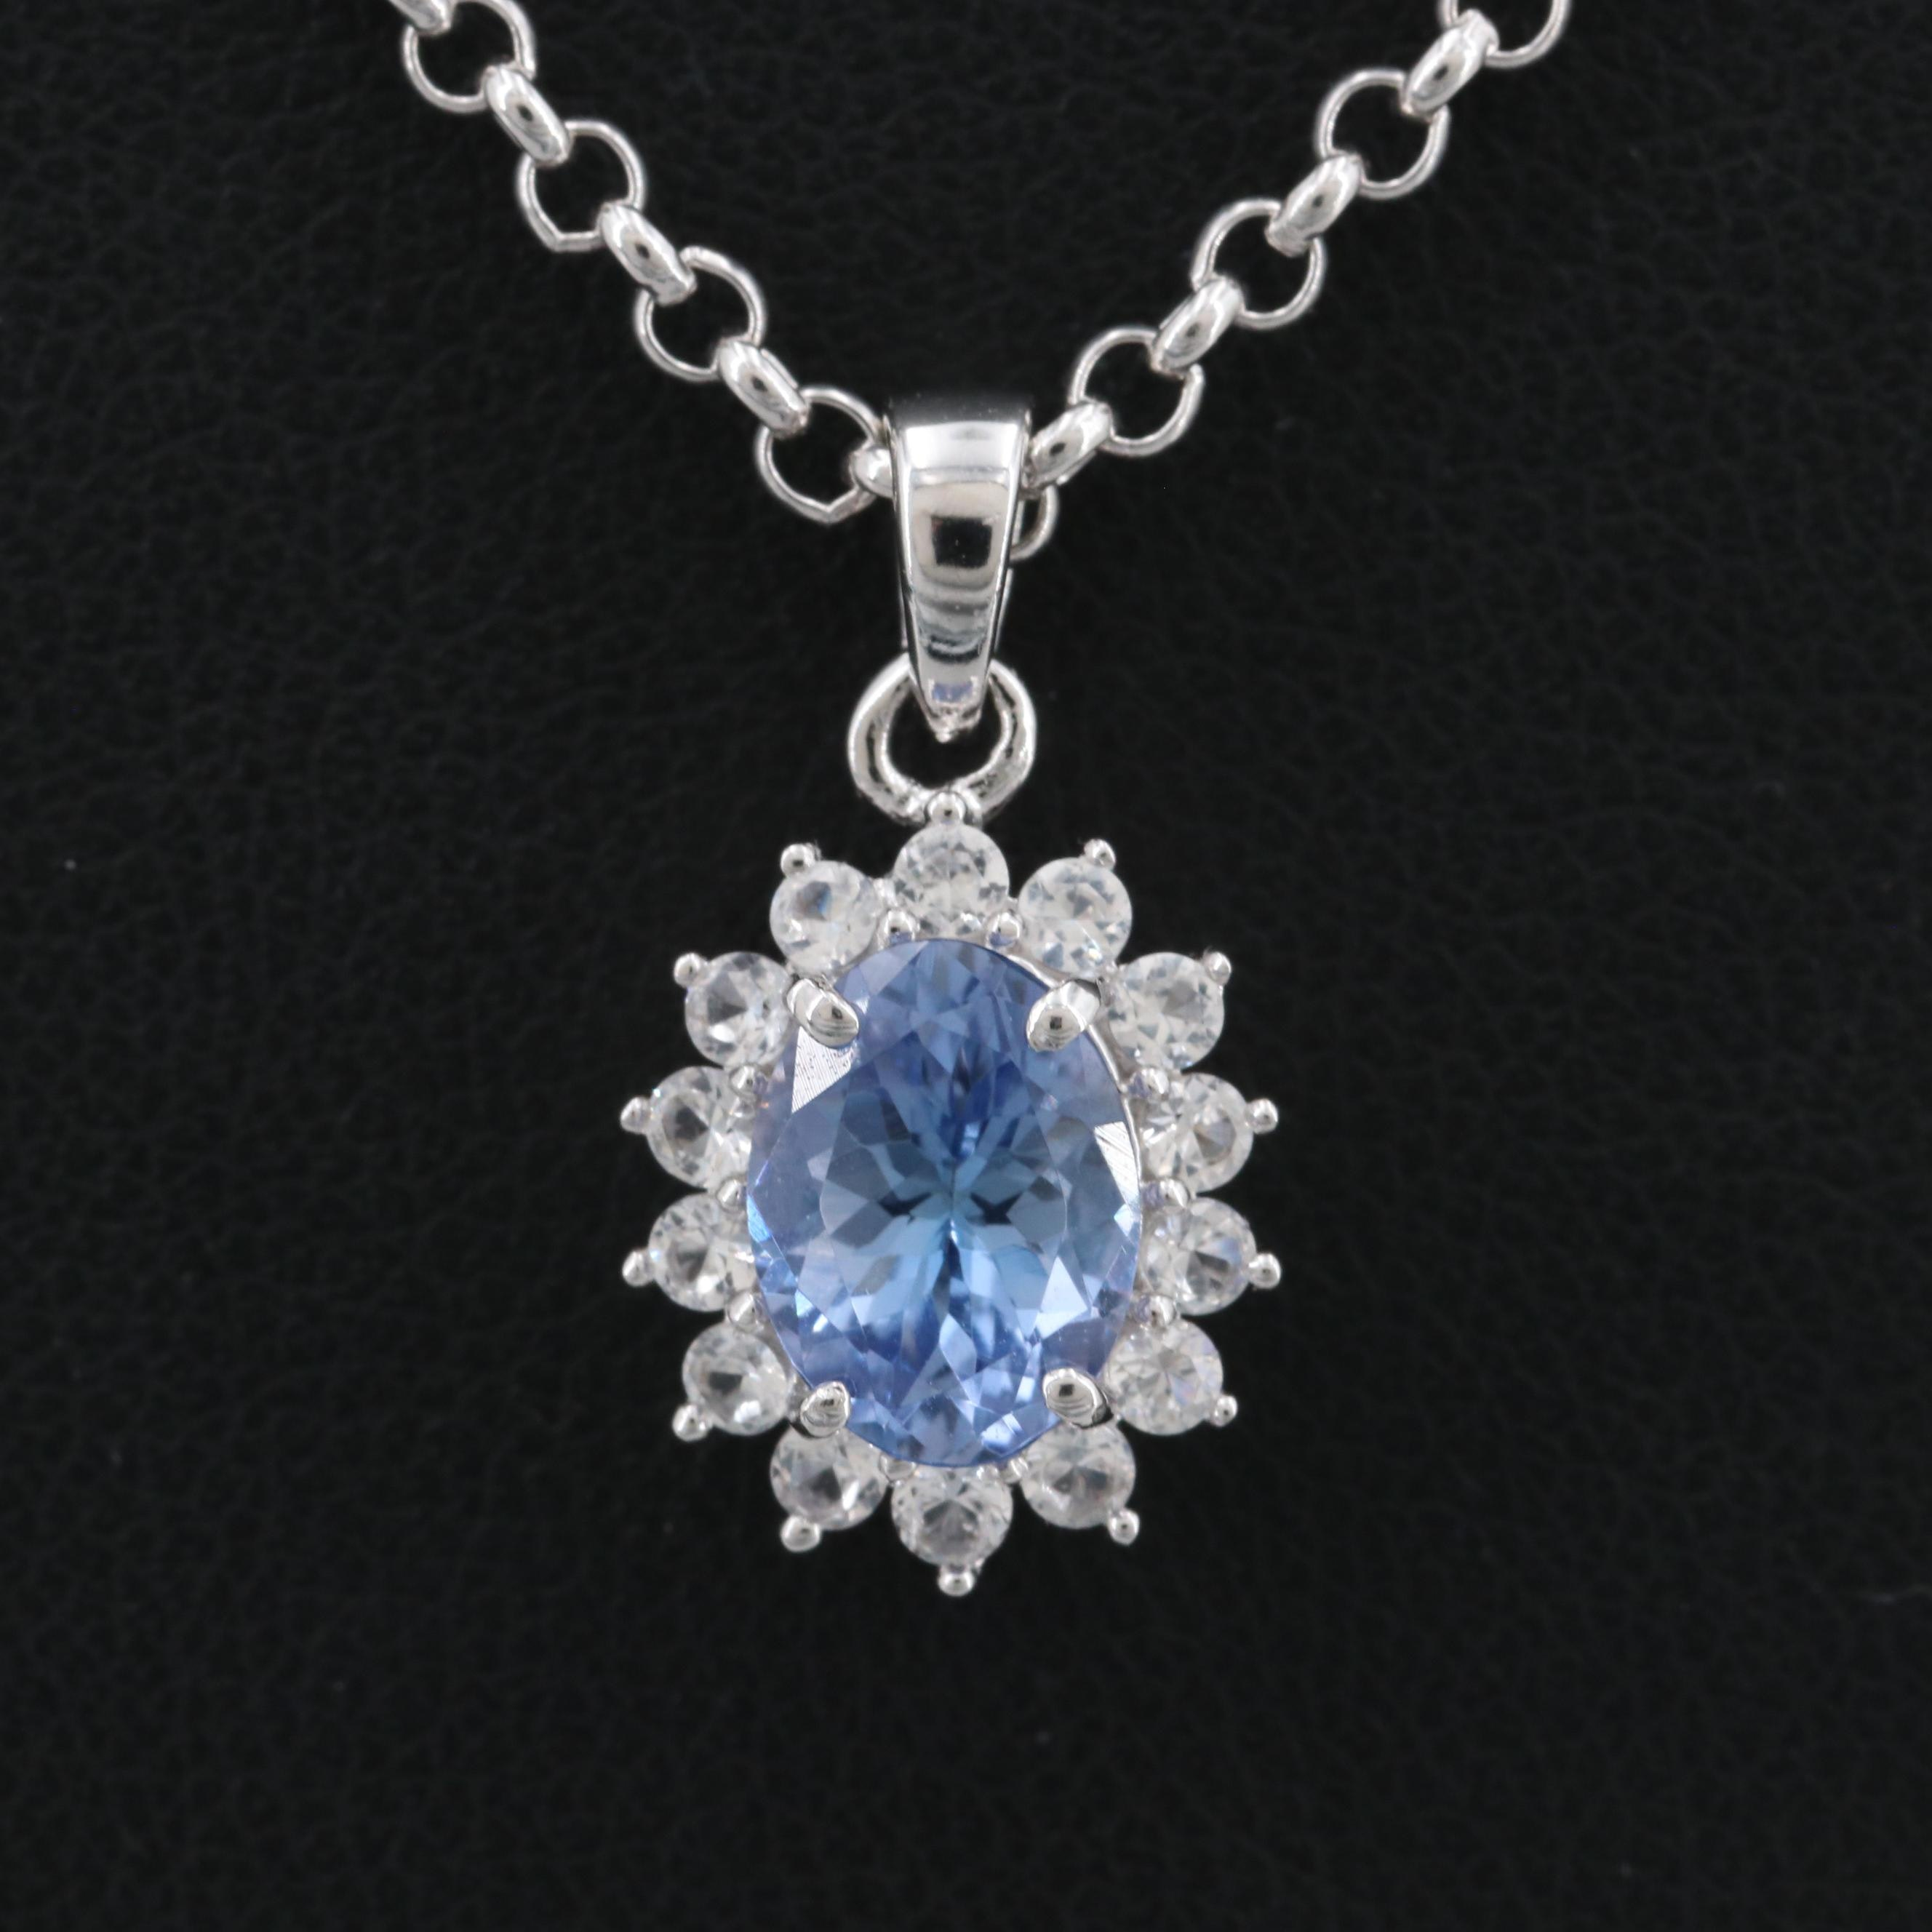 Sterling Silver Tanzanite and White Topaz Pendant Necklace